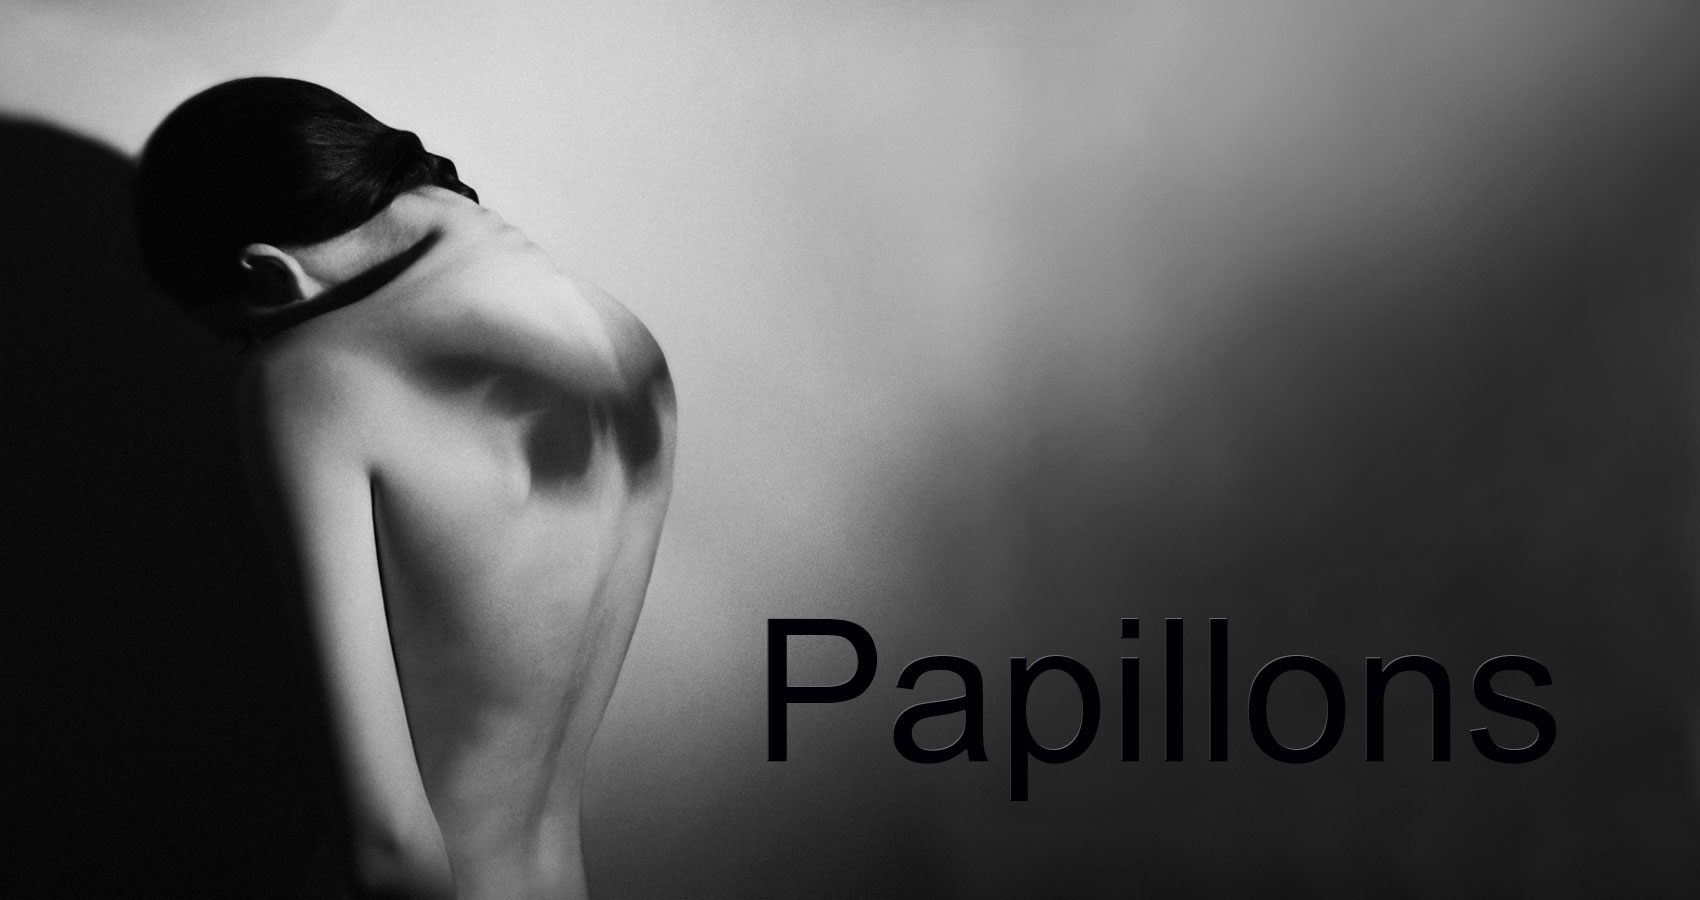 Papillons by Kathleen Truax Kamrada at Spillwords.com